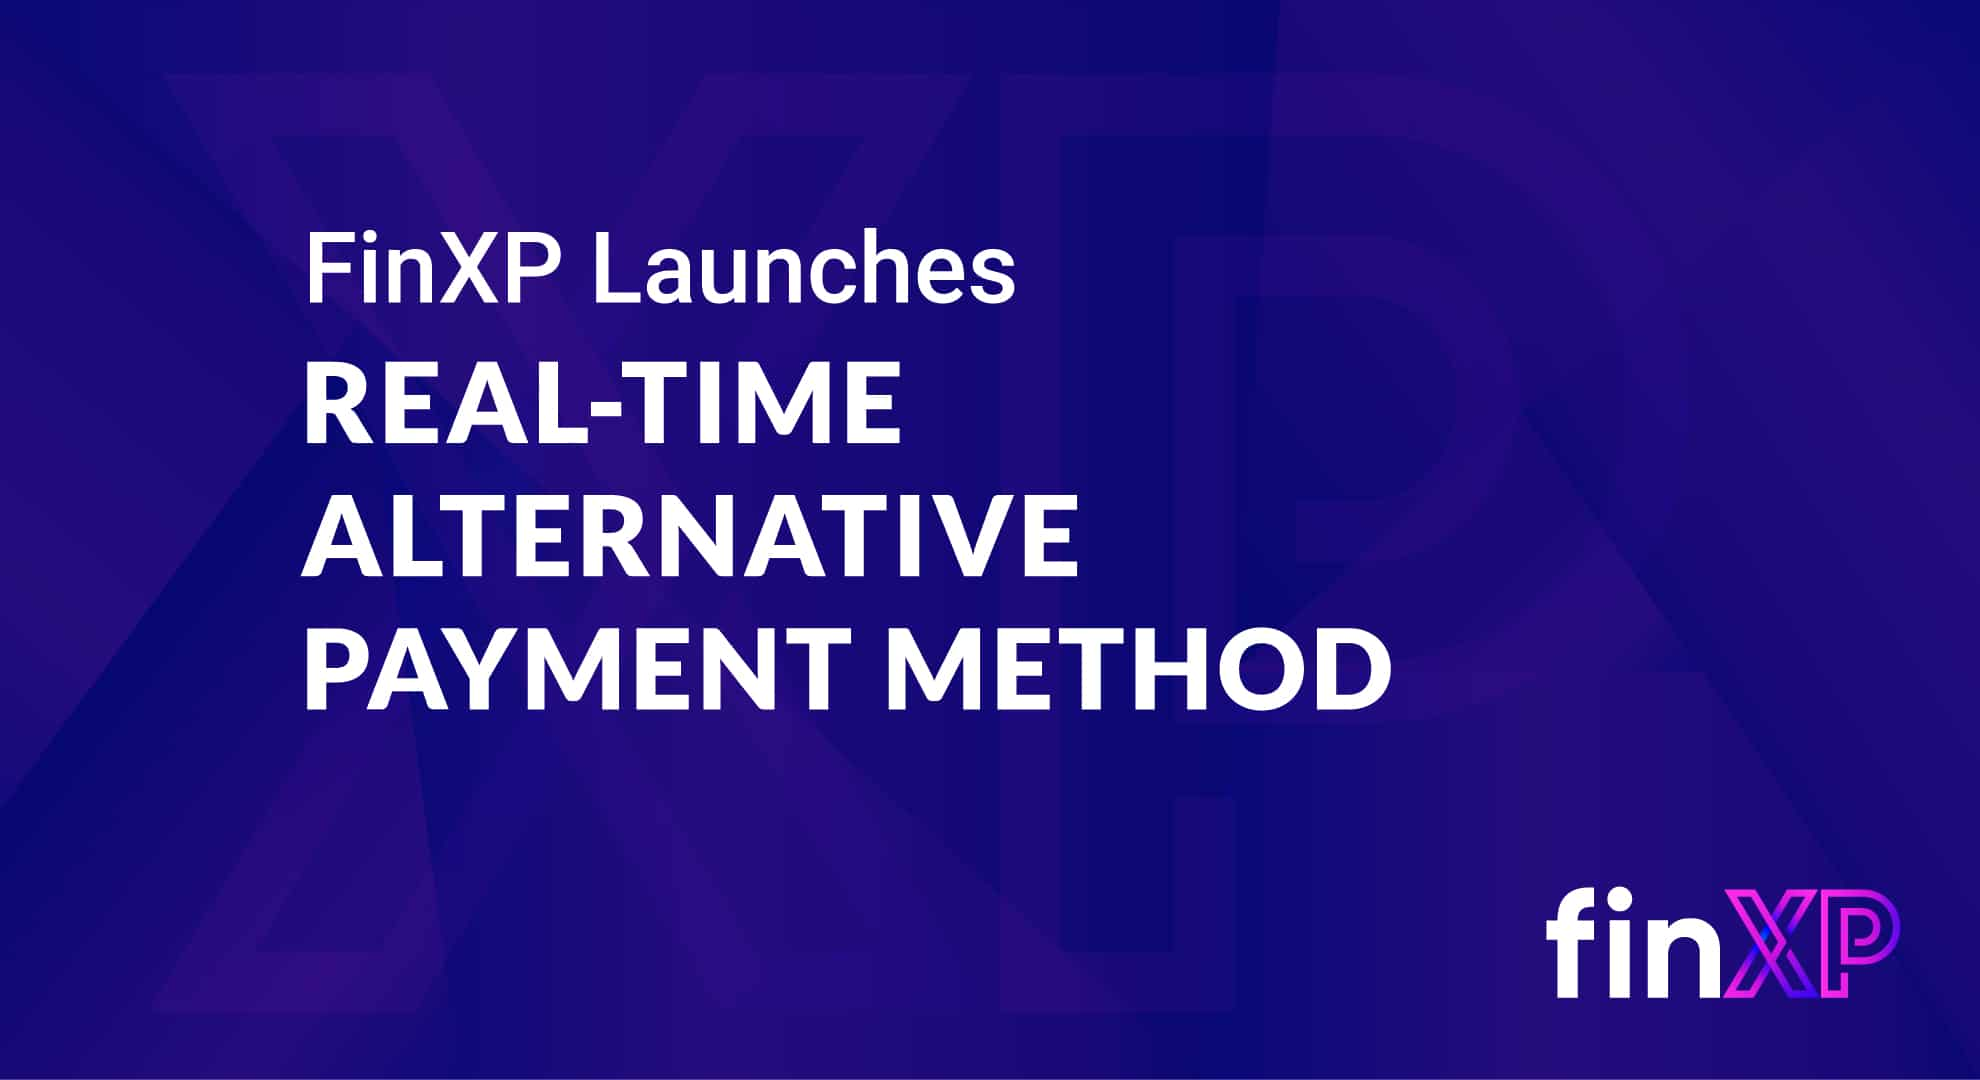 FinXP launches new Real-Time alternative payment method